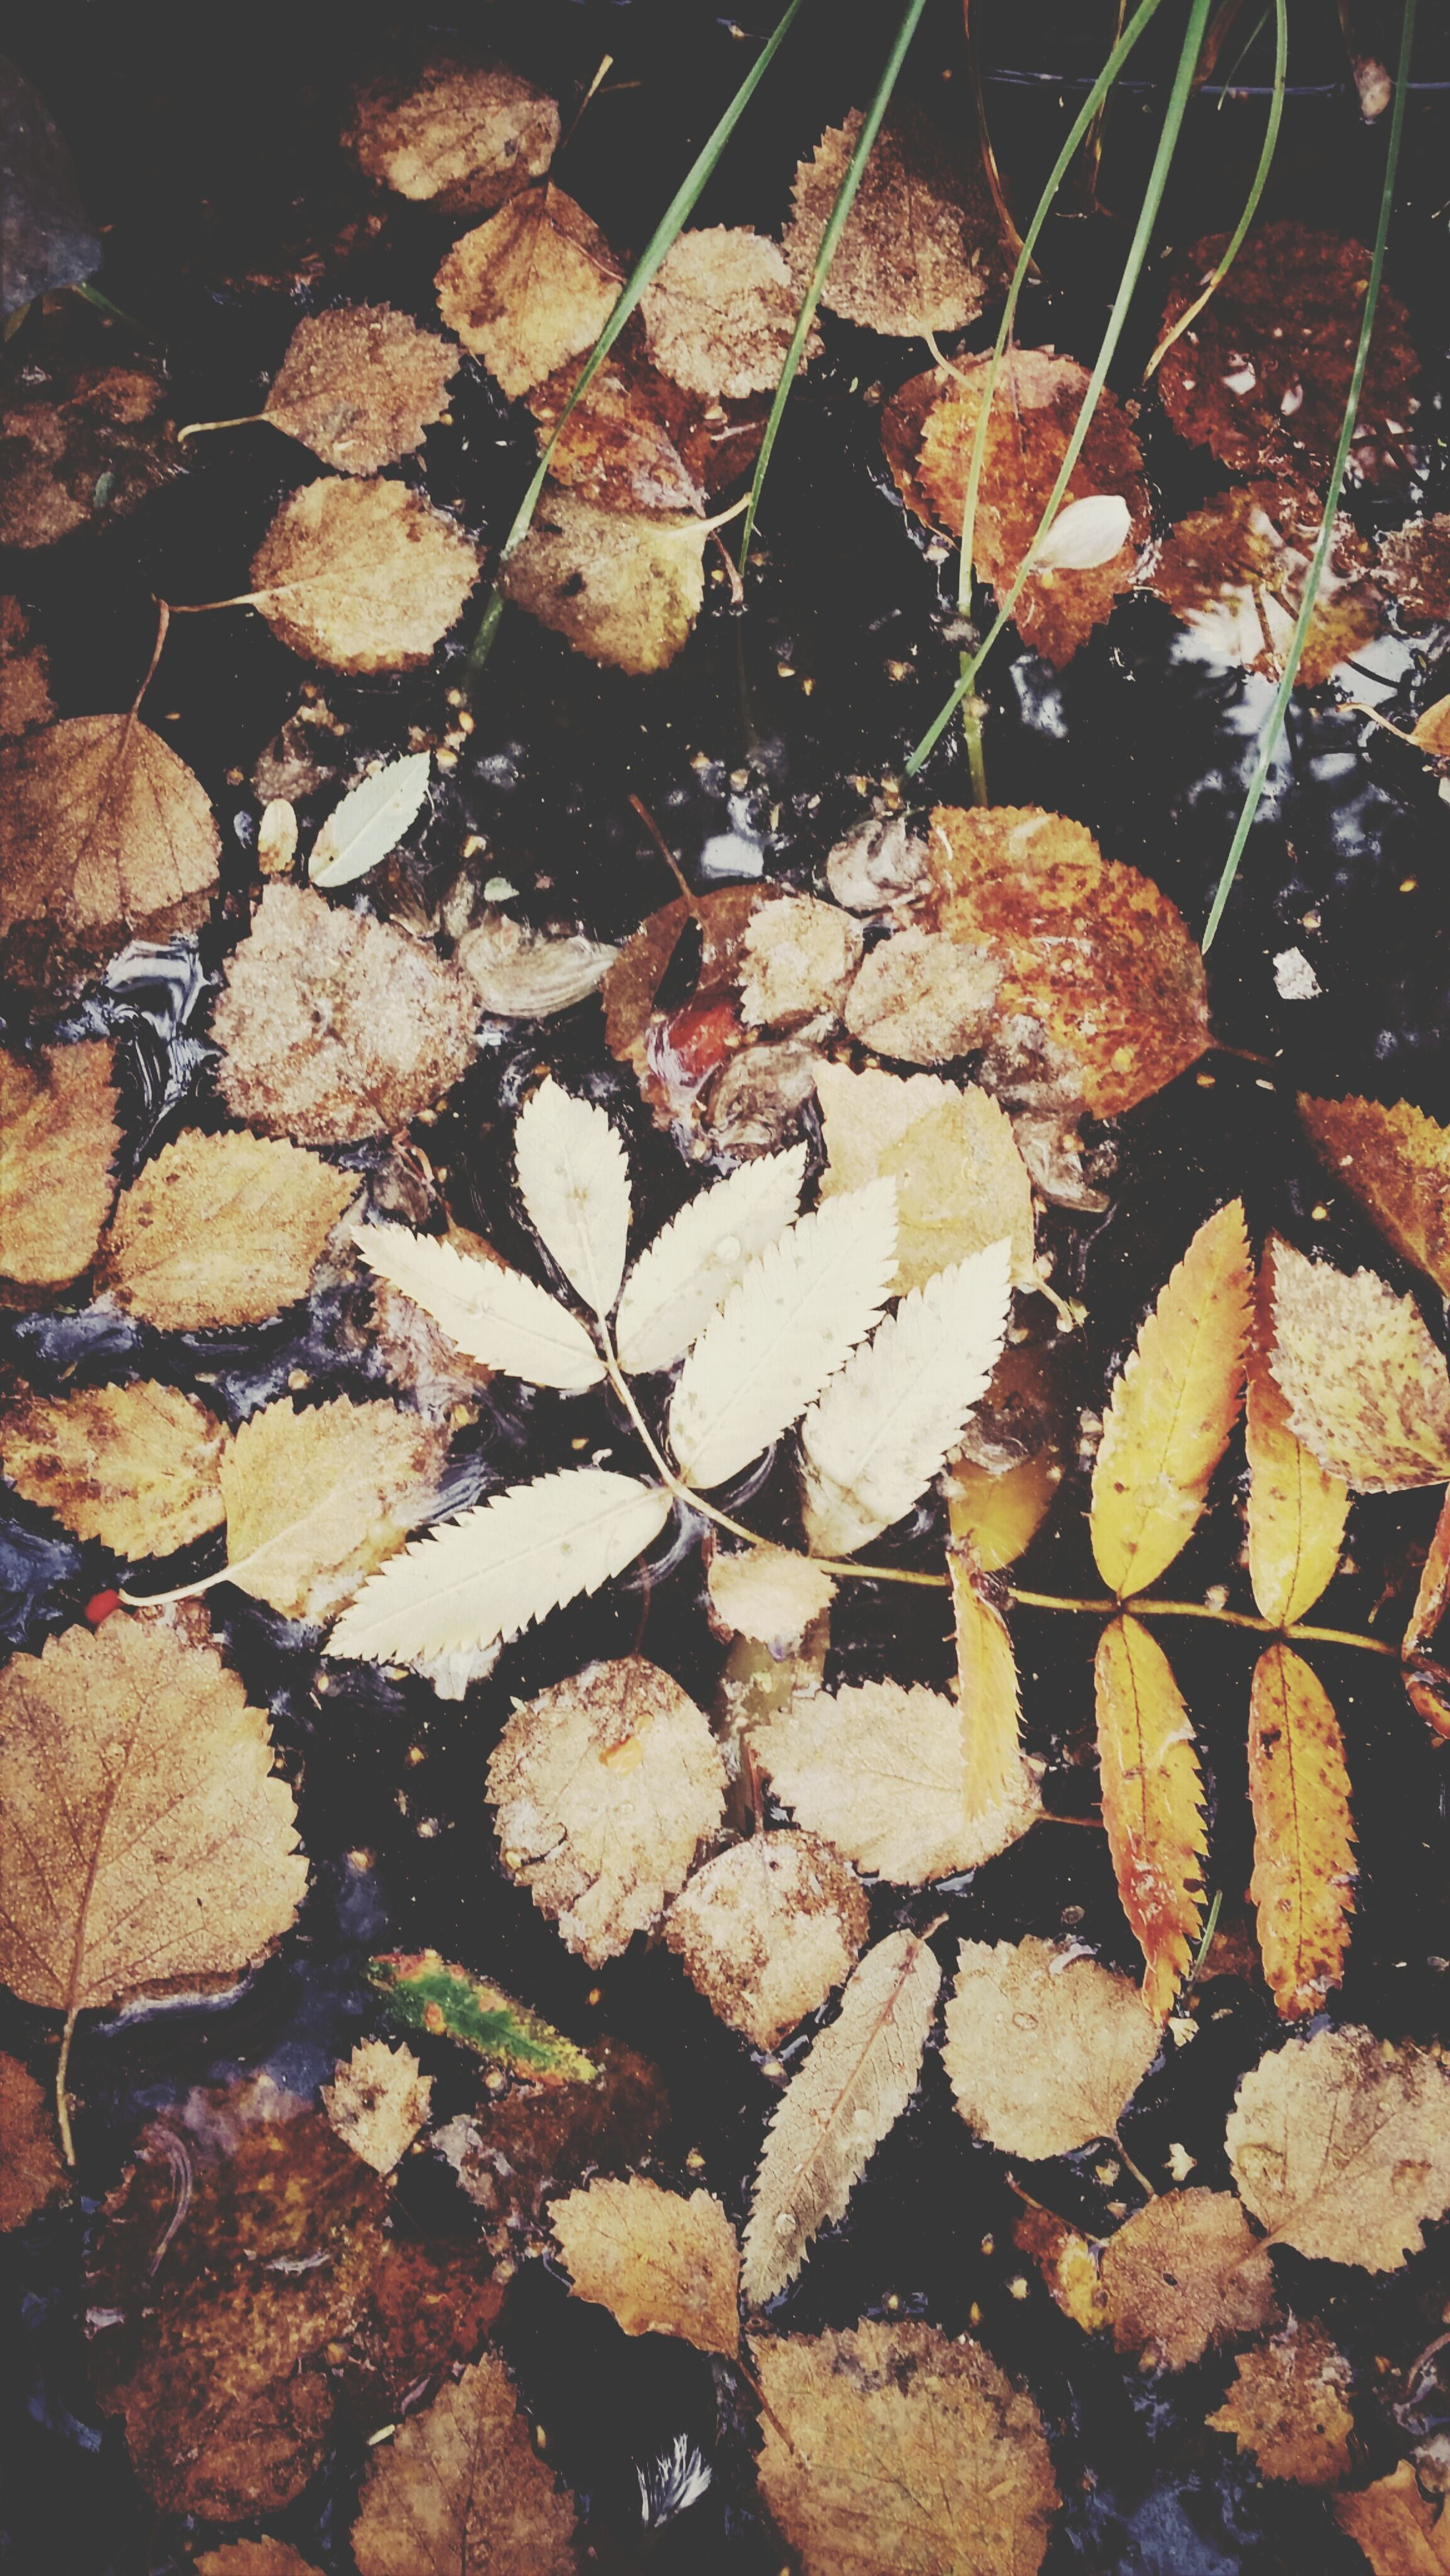 leaf, autumn, dry, nature, change, full frame, high angle view, backgrounds, fallen, leaves, outdoors, close-up, tranquility, growth, day, no people, season, abundance, natural pattern, textured